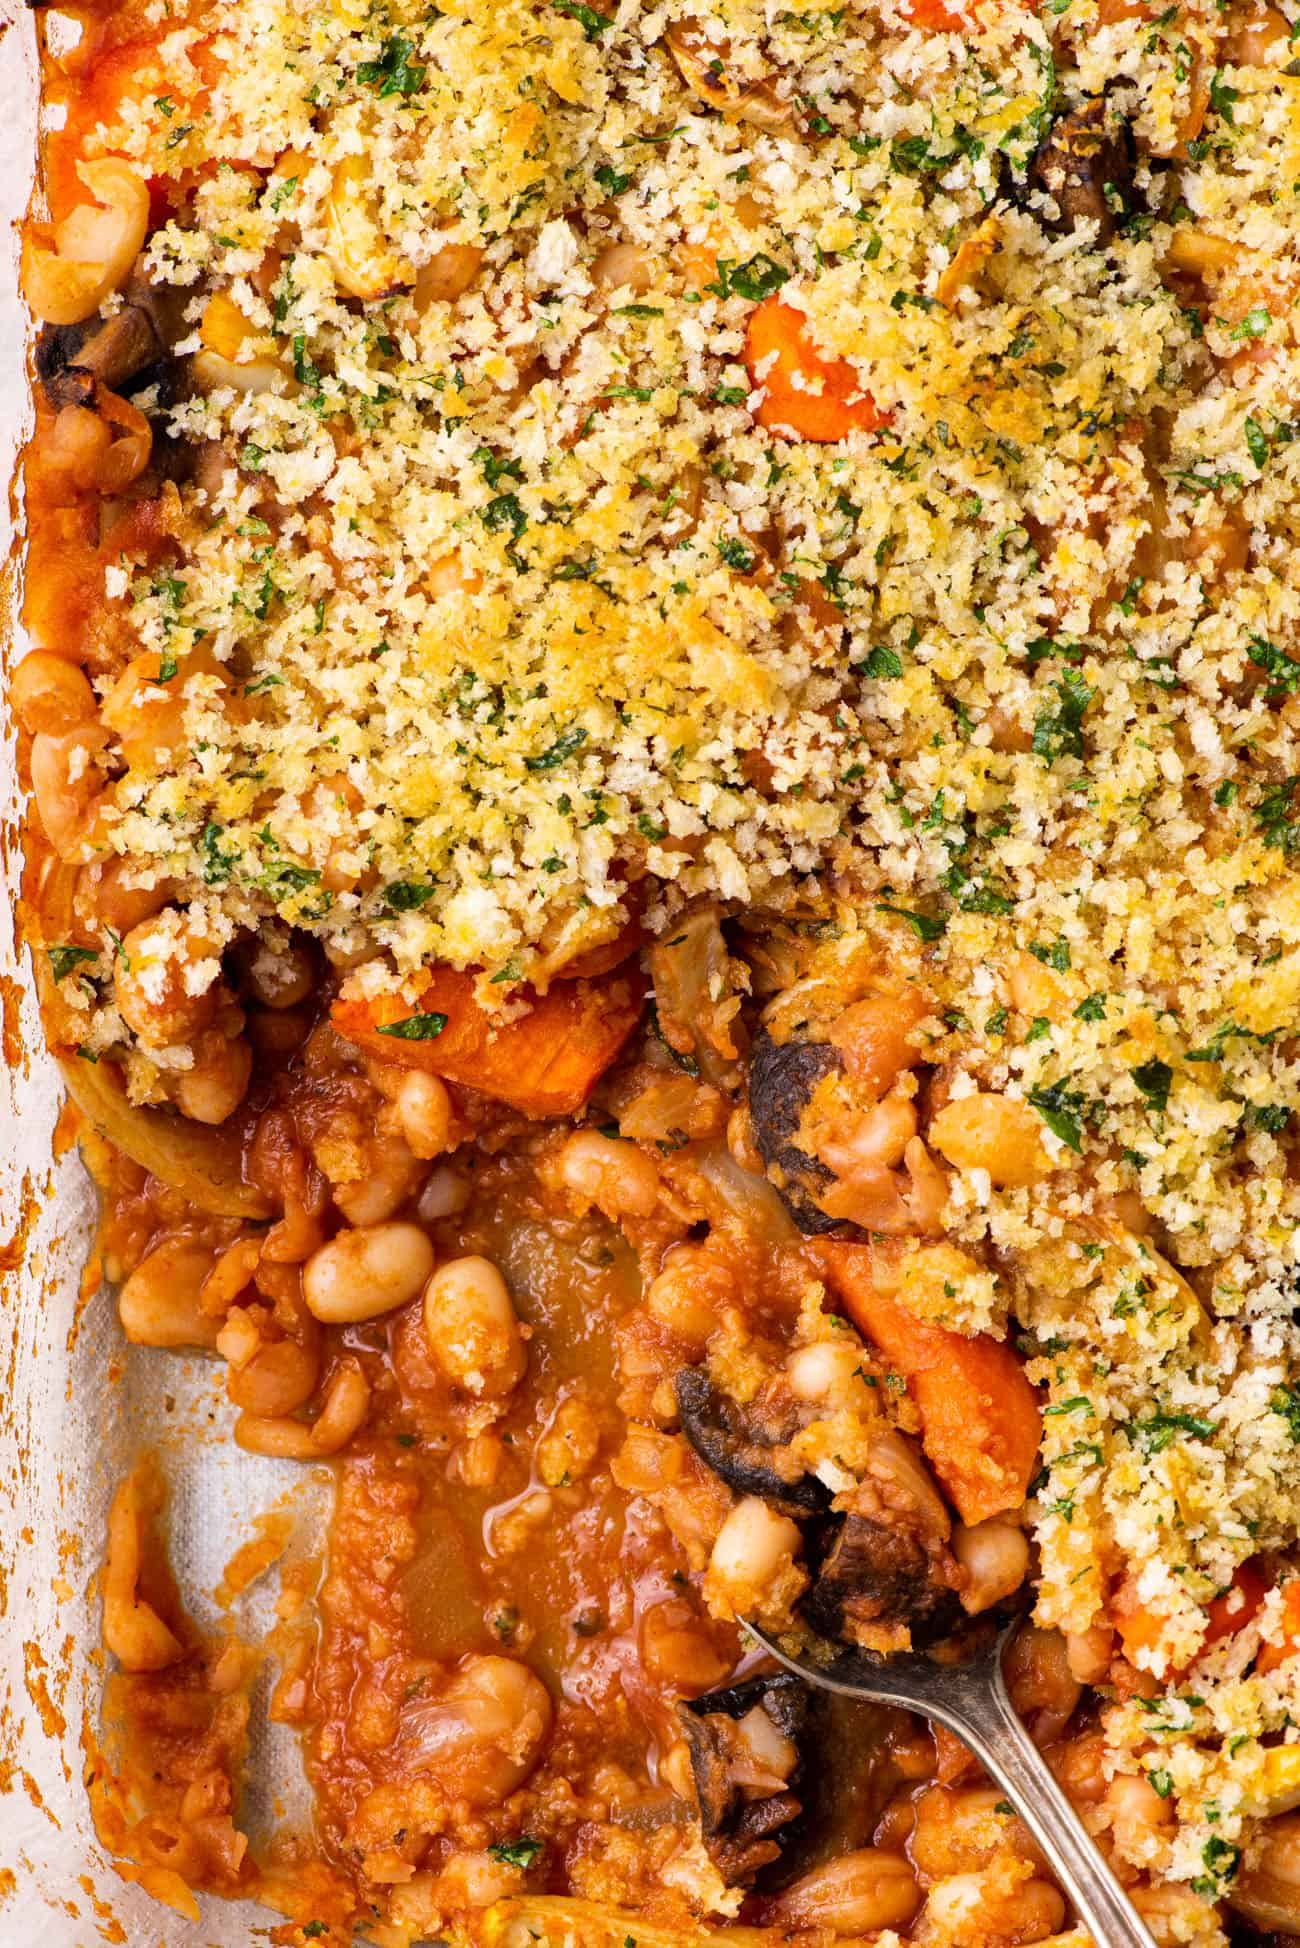 Close-up of cassoulet with brothy beans, roasted vegetables, and golden breadcrumbs